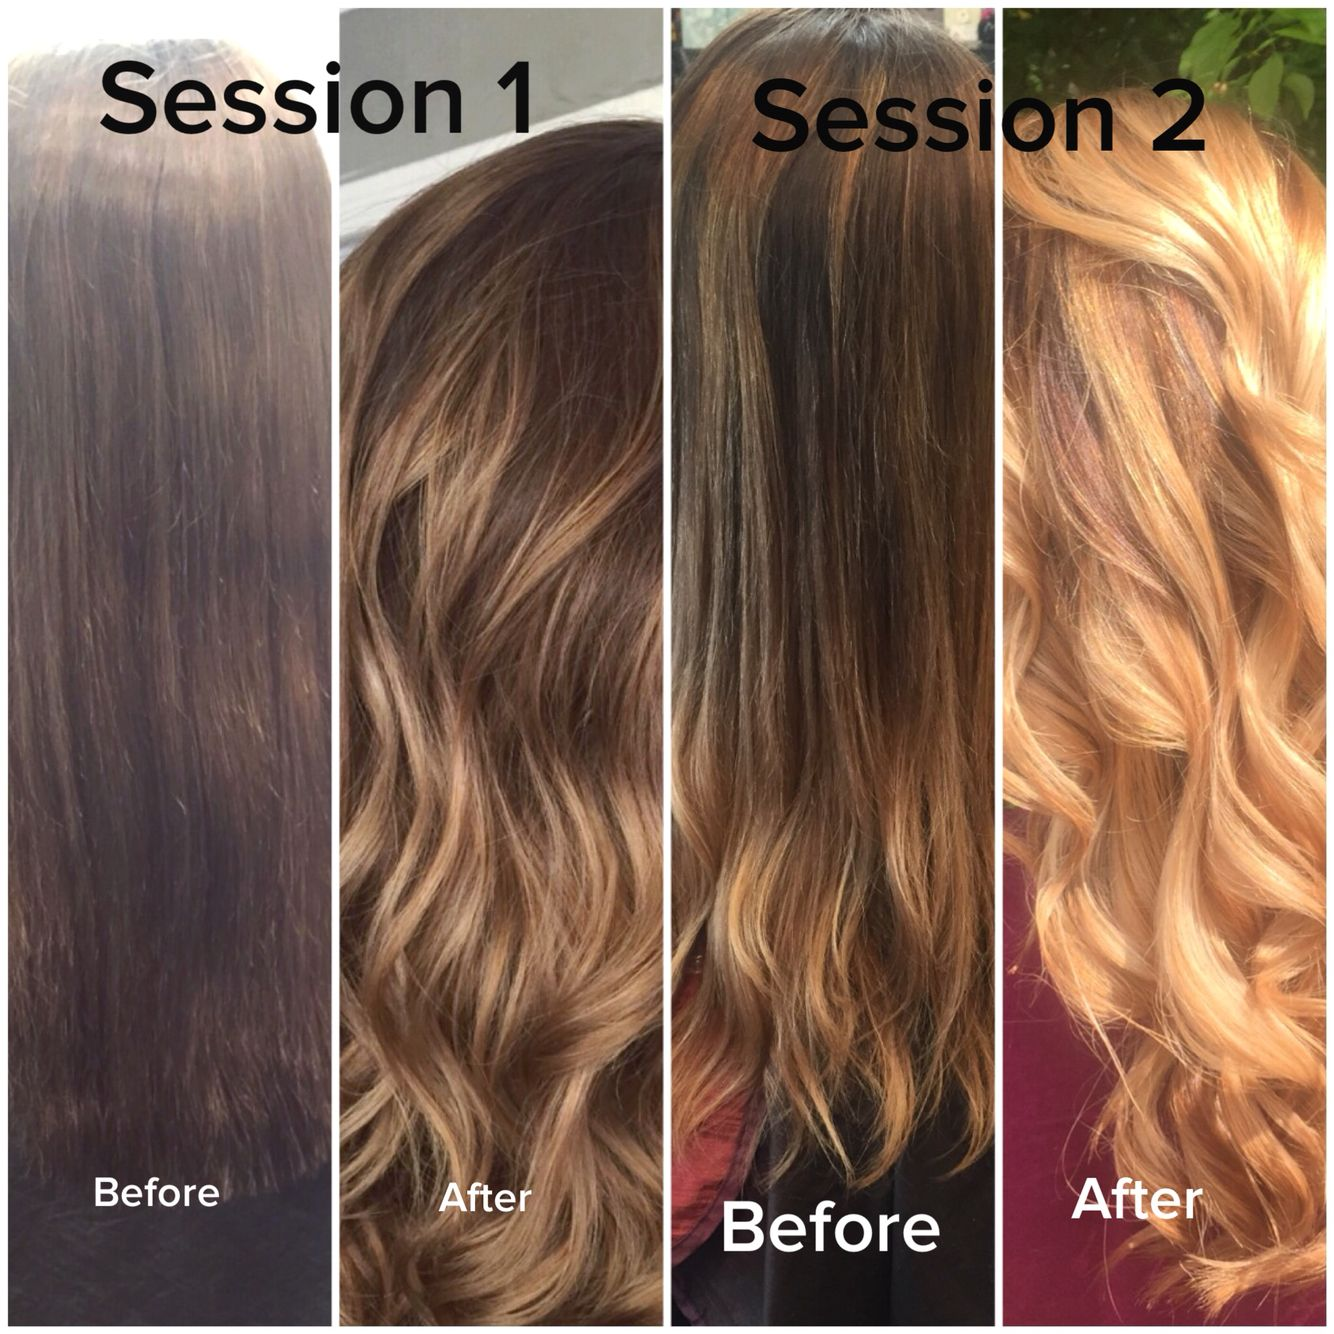 Going From Brown To Blonde Slowly And In Stages With Balayage Technique By Tayler Namanny Brown To Blonde Brunette To Blonde Hair